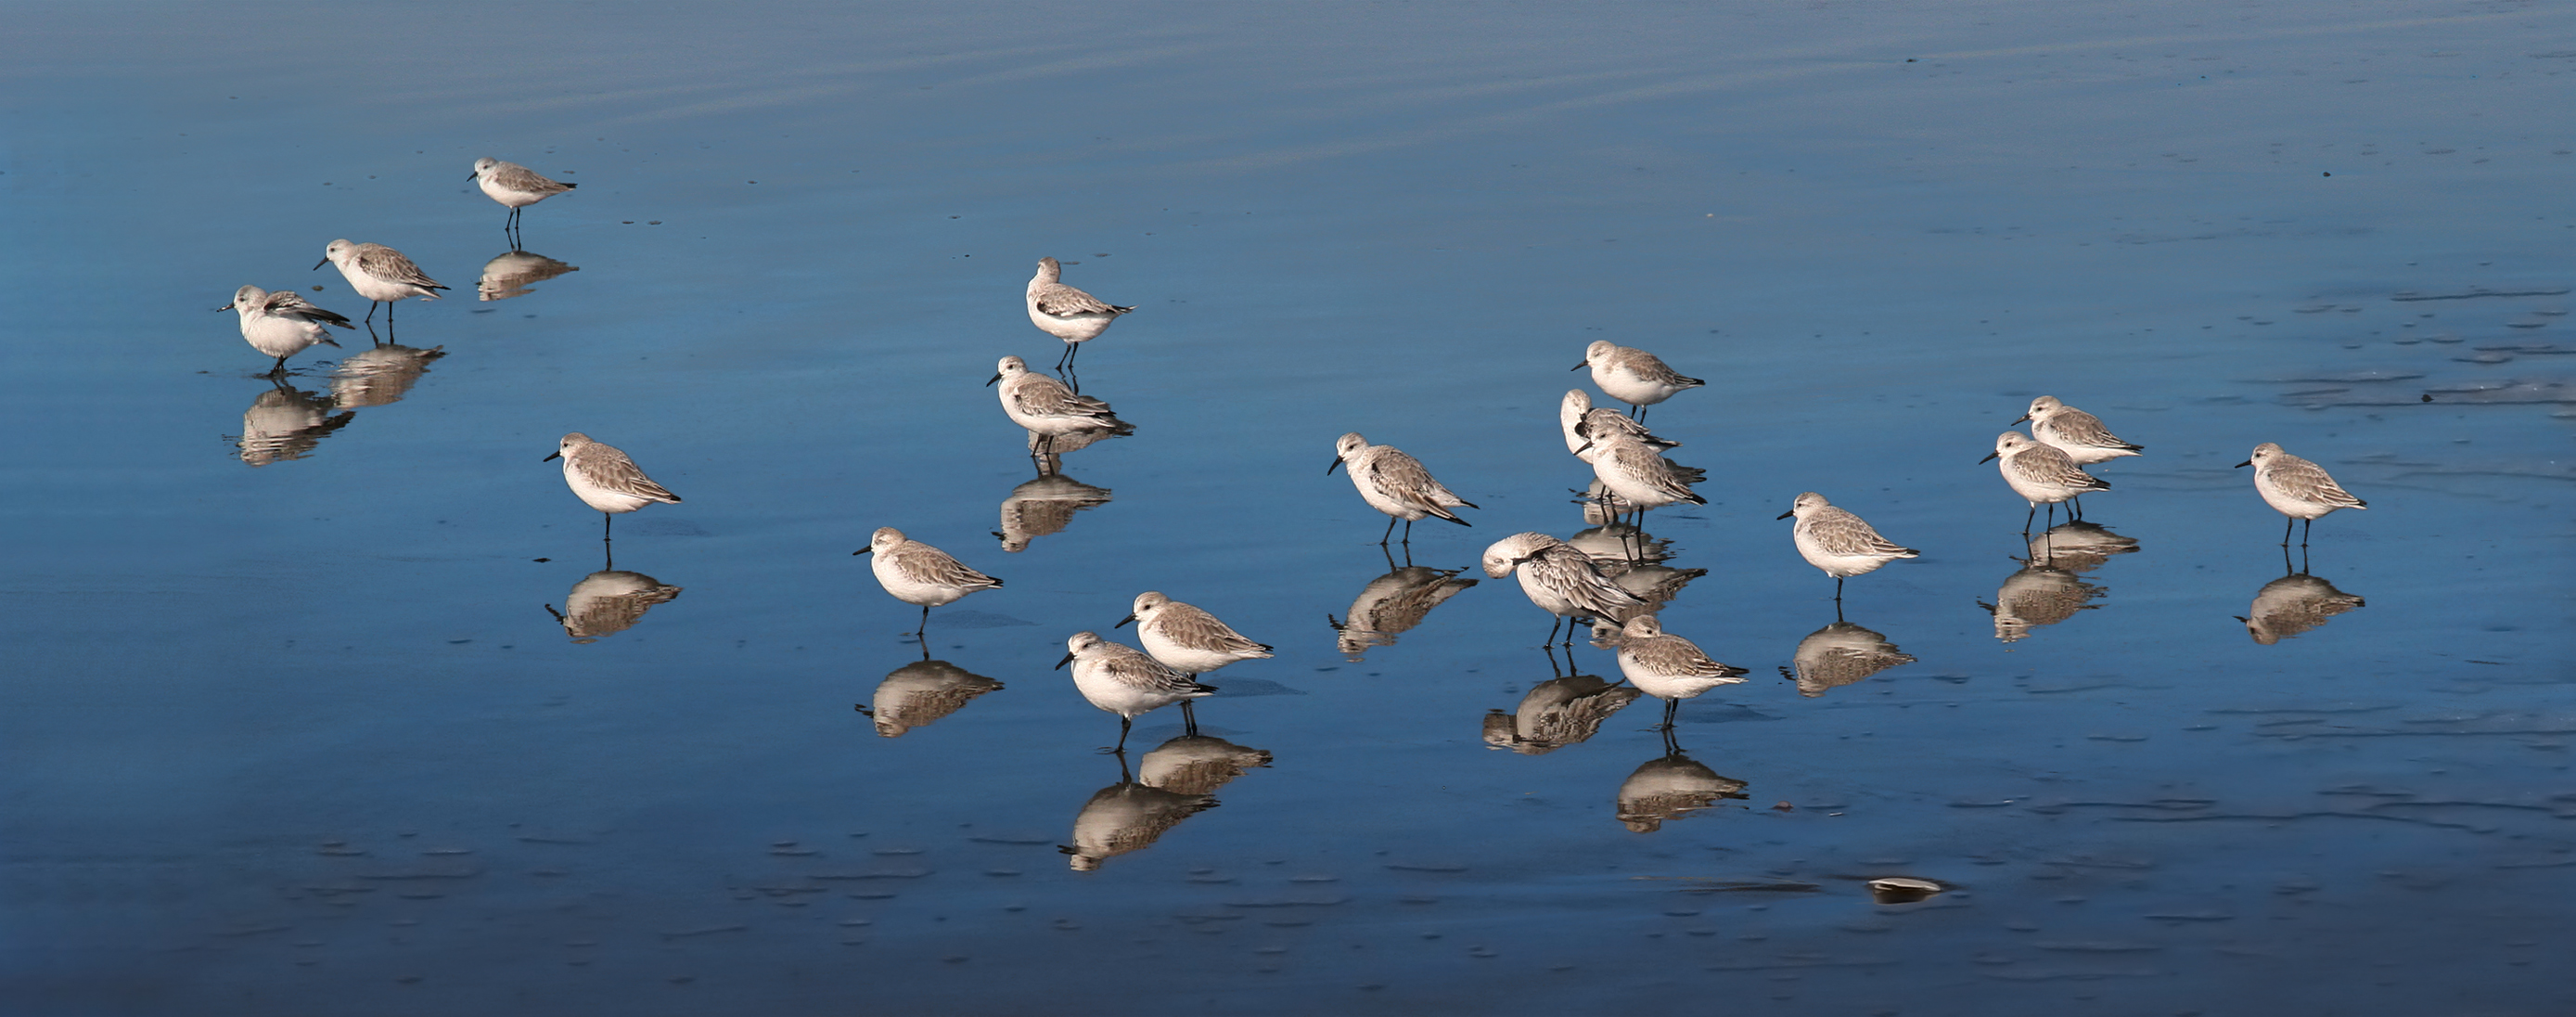 http://upload.wikimedia.org/wikipedia/commons/7/72/Calidris_alba_at_Ocean_Beach%2C_San_Francisco%2C_California_-_20101116.jpg